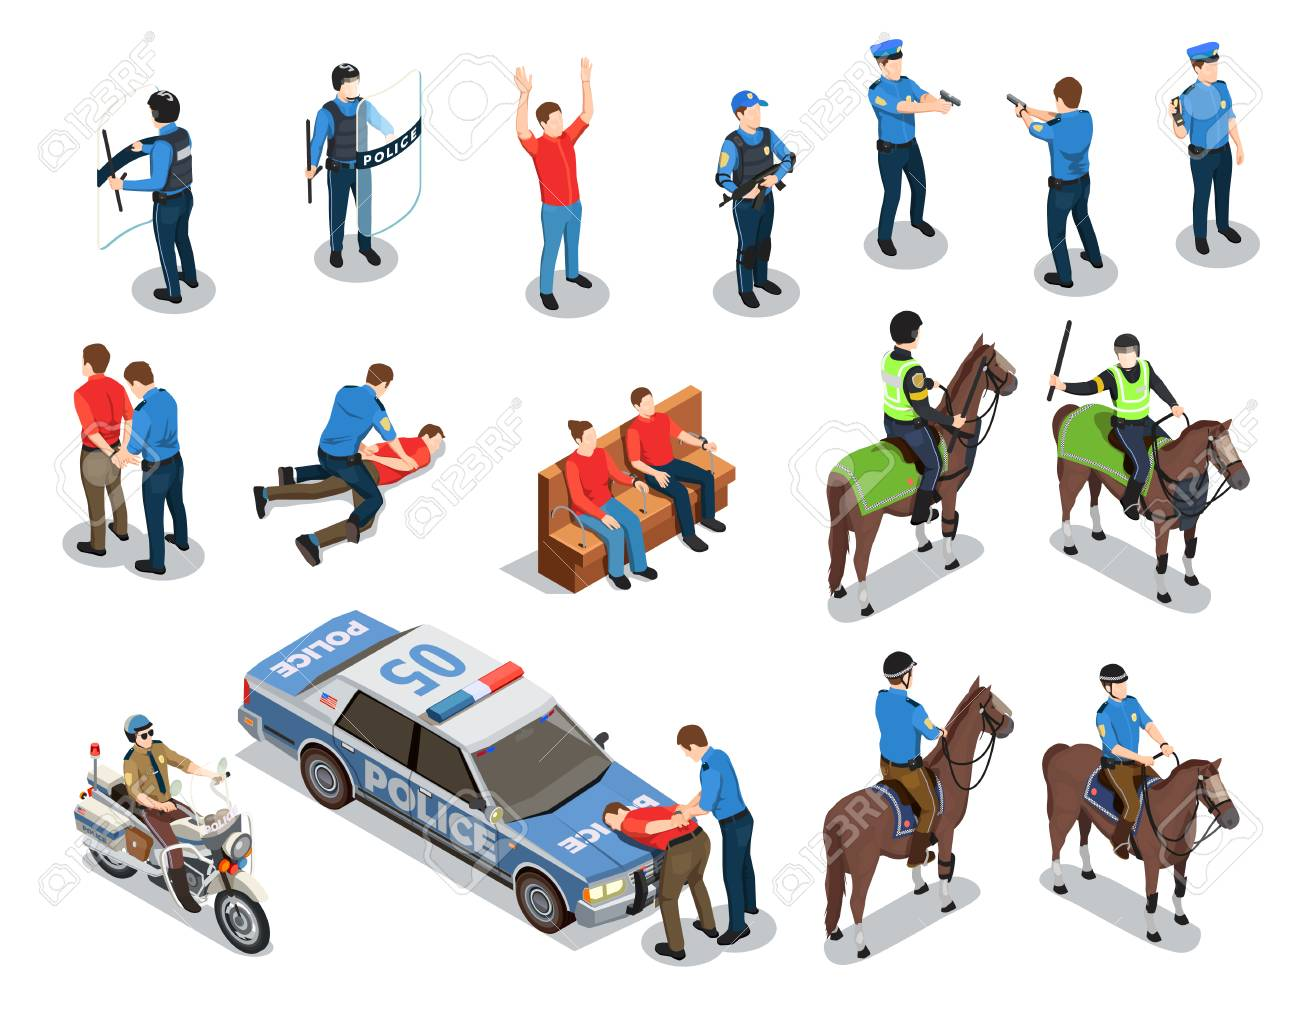 Police isometric icons set with law enforcement symbols isolated vector illustration - 102746333